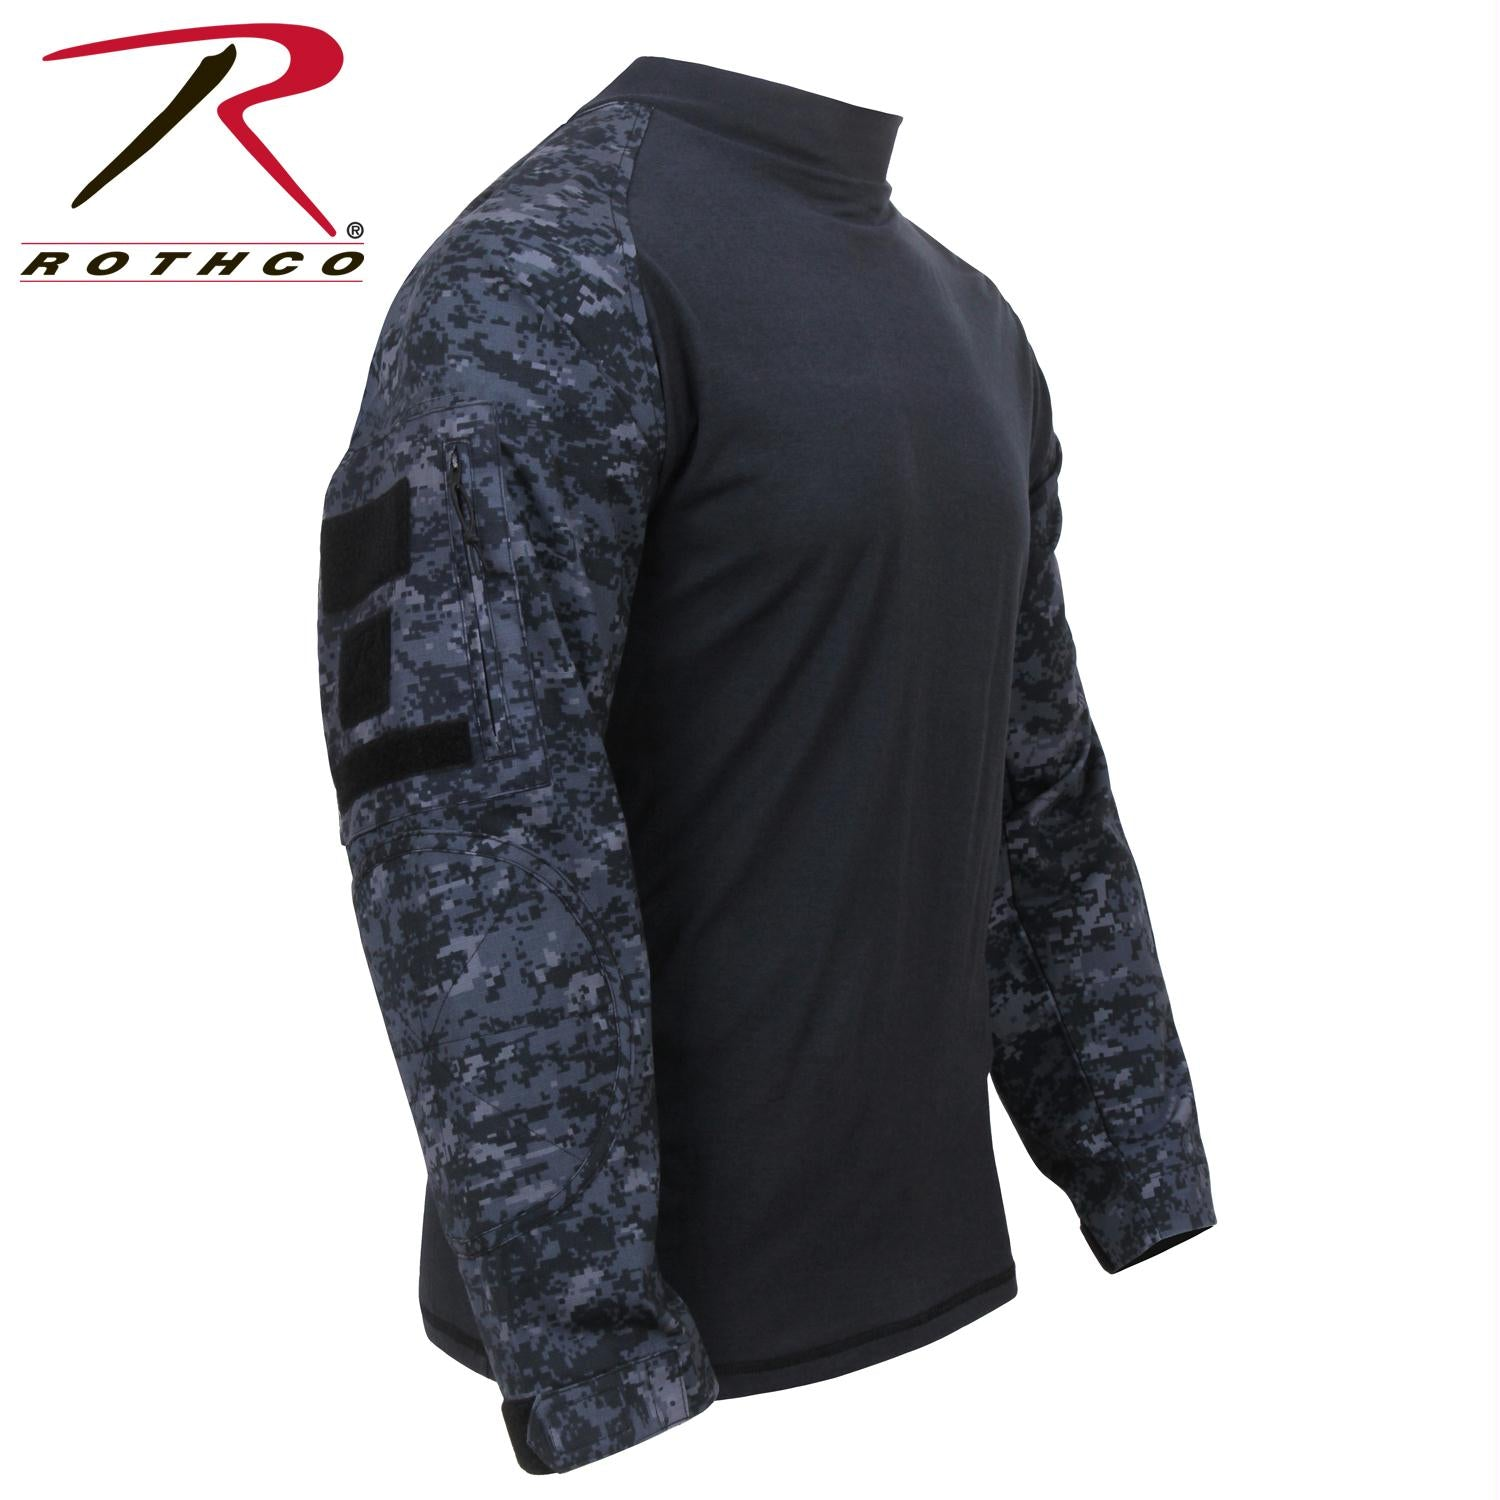 Rothco Military FR NYCO Combat Shirt - Midnight Digital Camo / 2XL